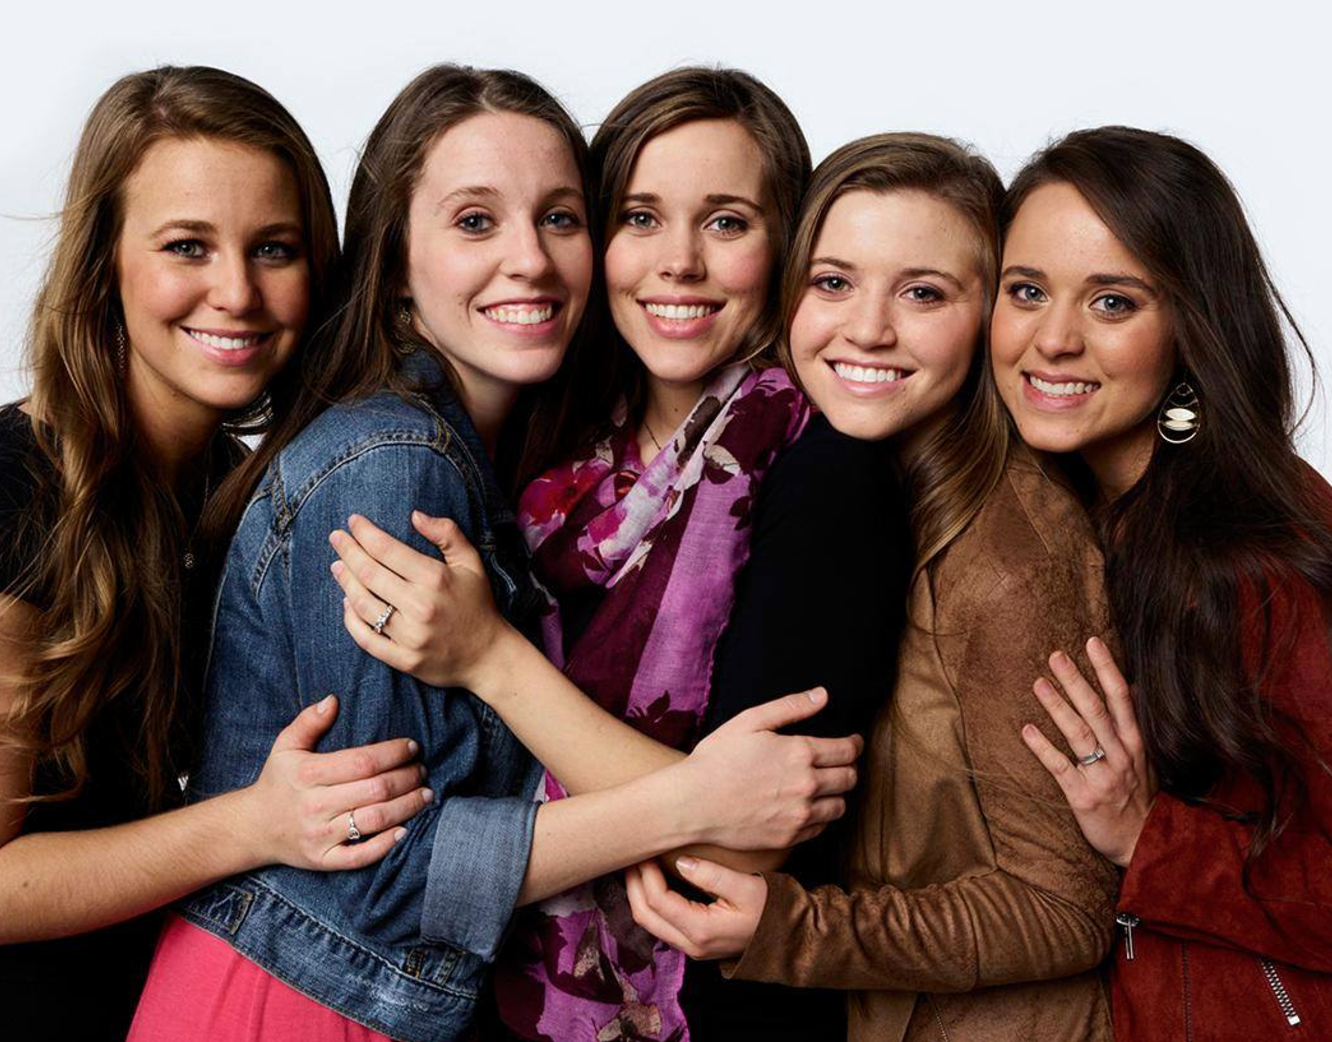 farm-watch-online-double-dating-duggars